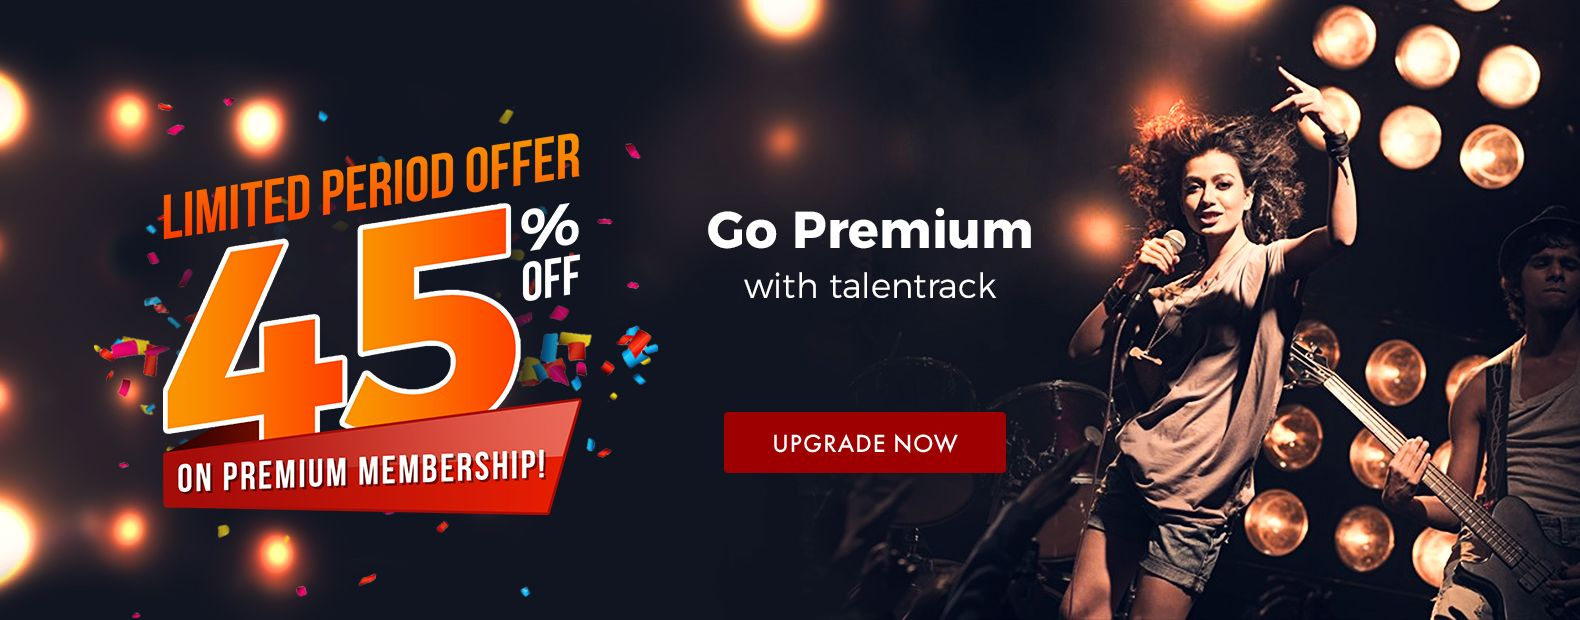 LIMITED PERIOD OFFER 45% ON PREMIUM MEMBERSHIP